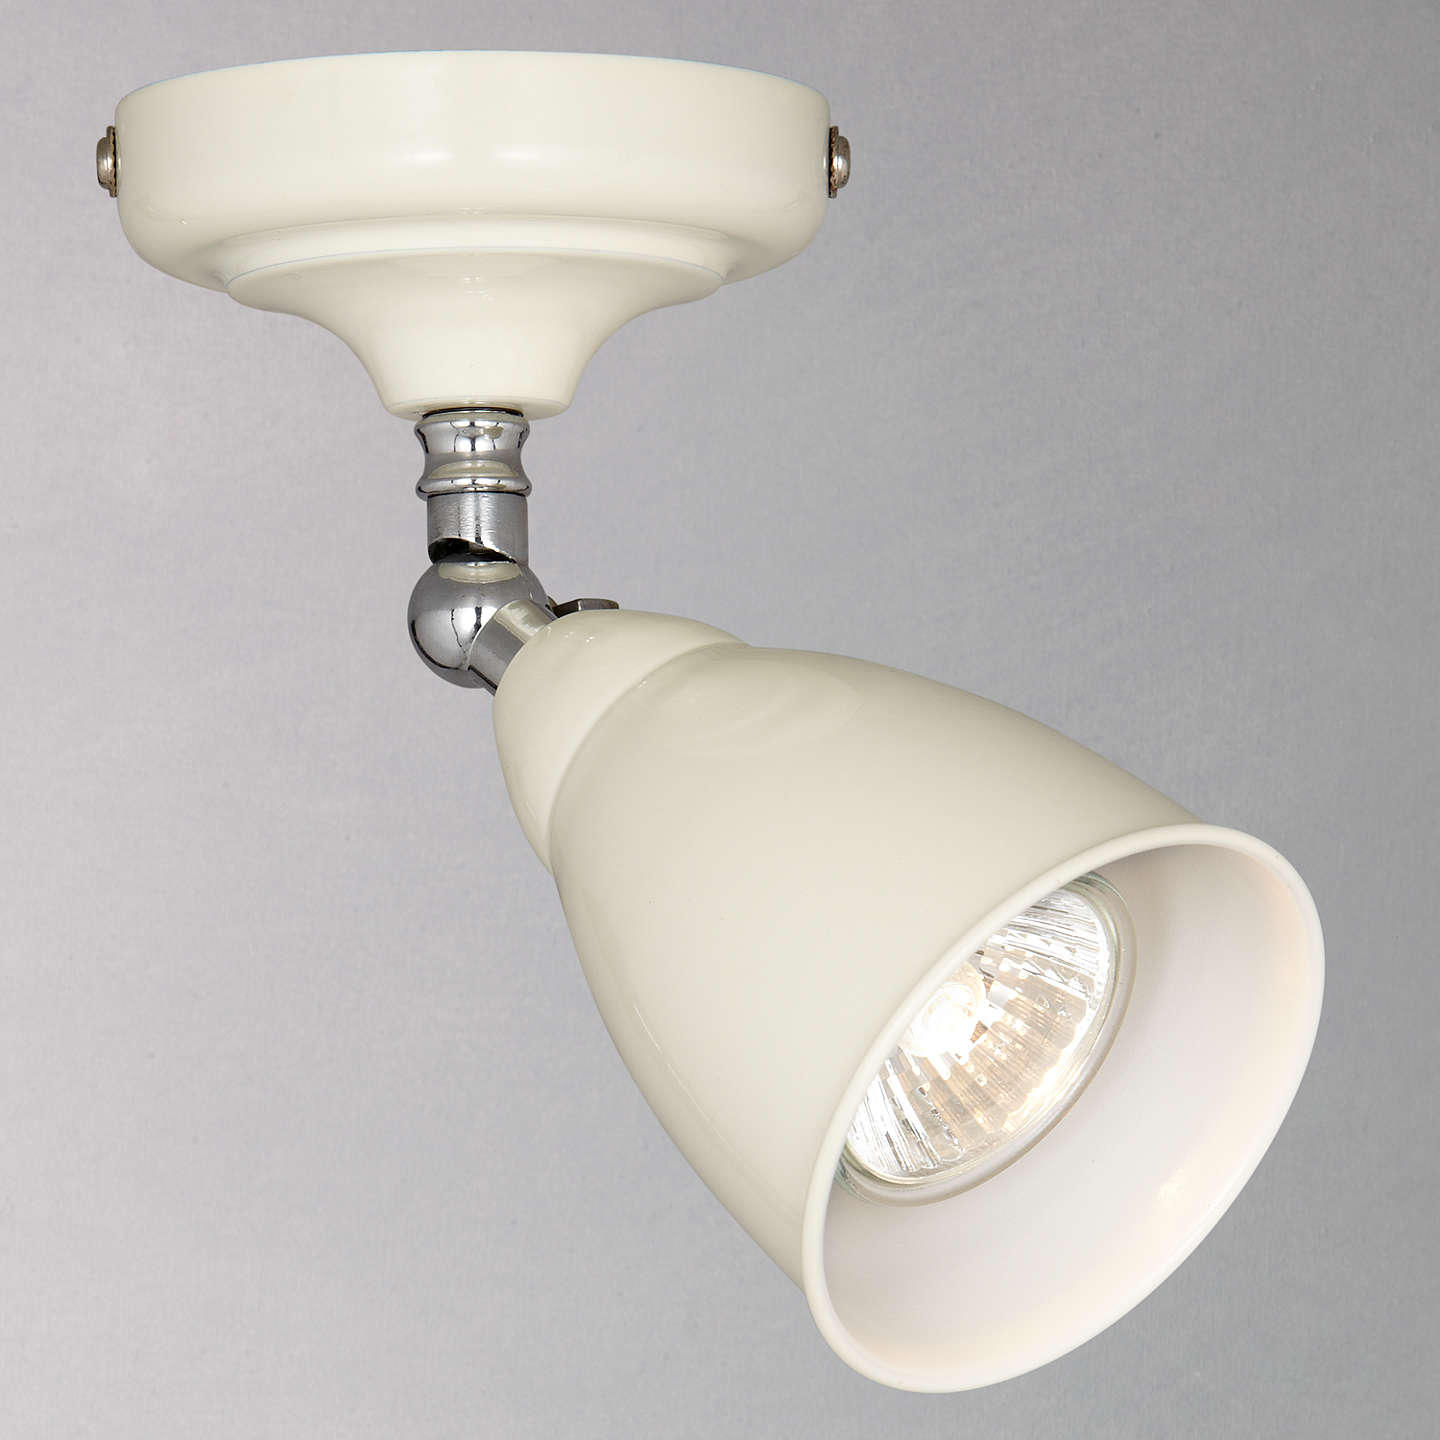 John lewis plymouth single led spotlight at john lewis buyjohn lewis plymouth single led spotlight ivory online at johnlewis aloadofball Image collections